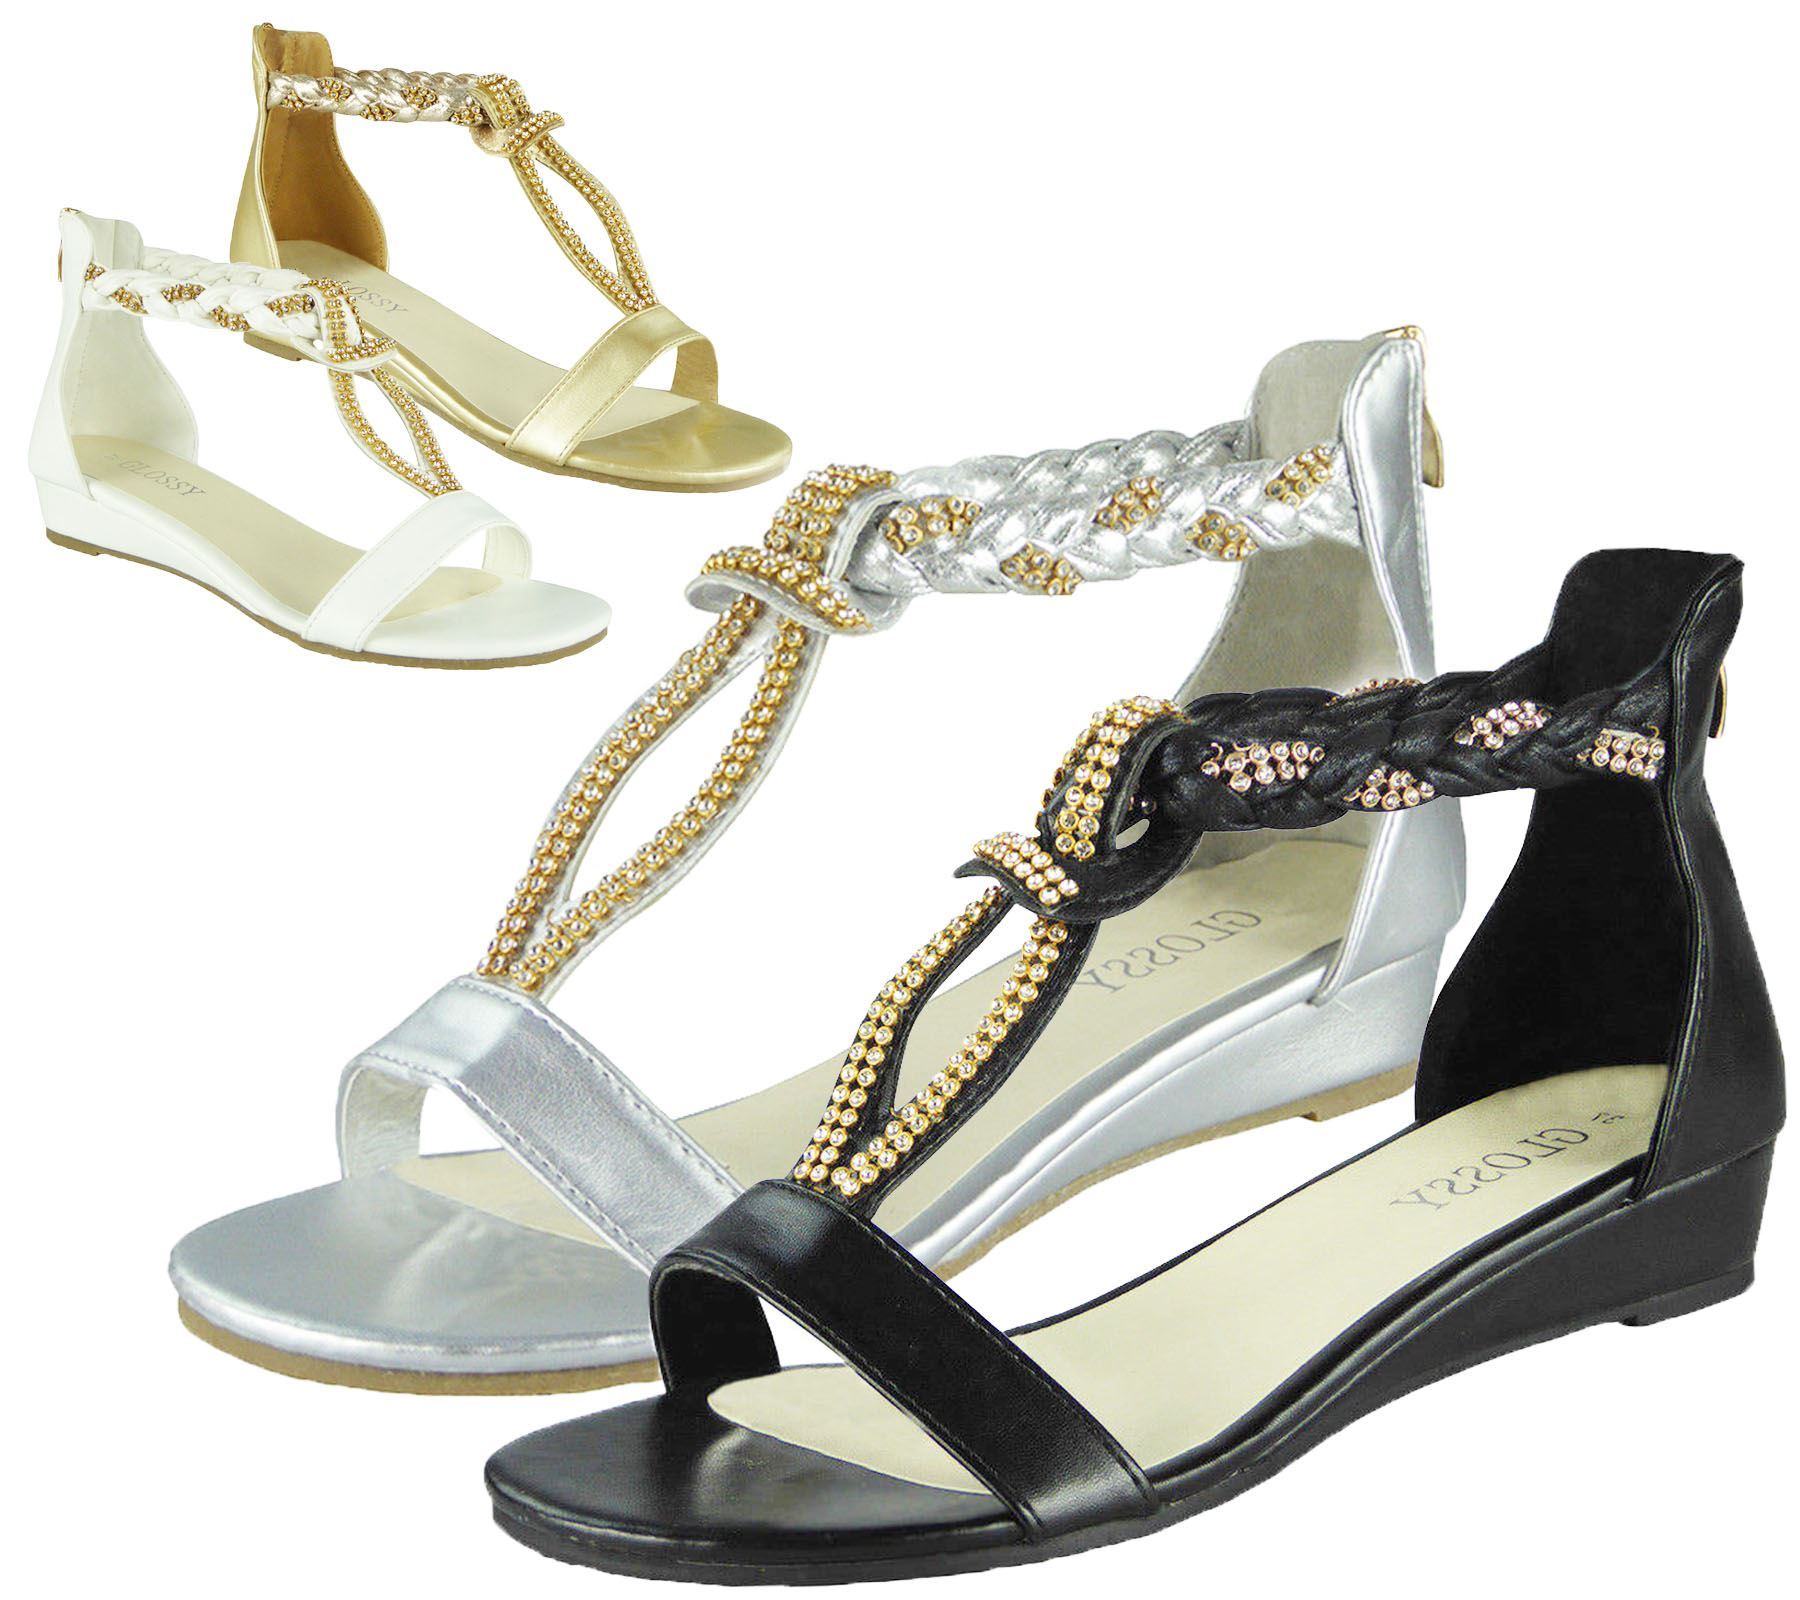 Details about Ladies Sandals Low Wedge Diamante Summer Womens Wedding Fancy Shoes